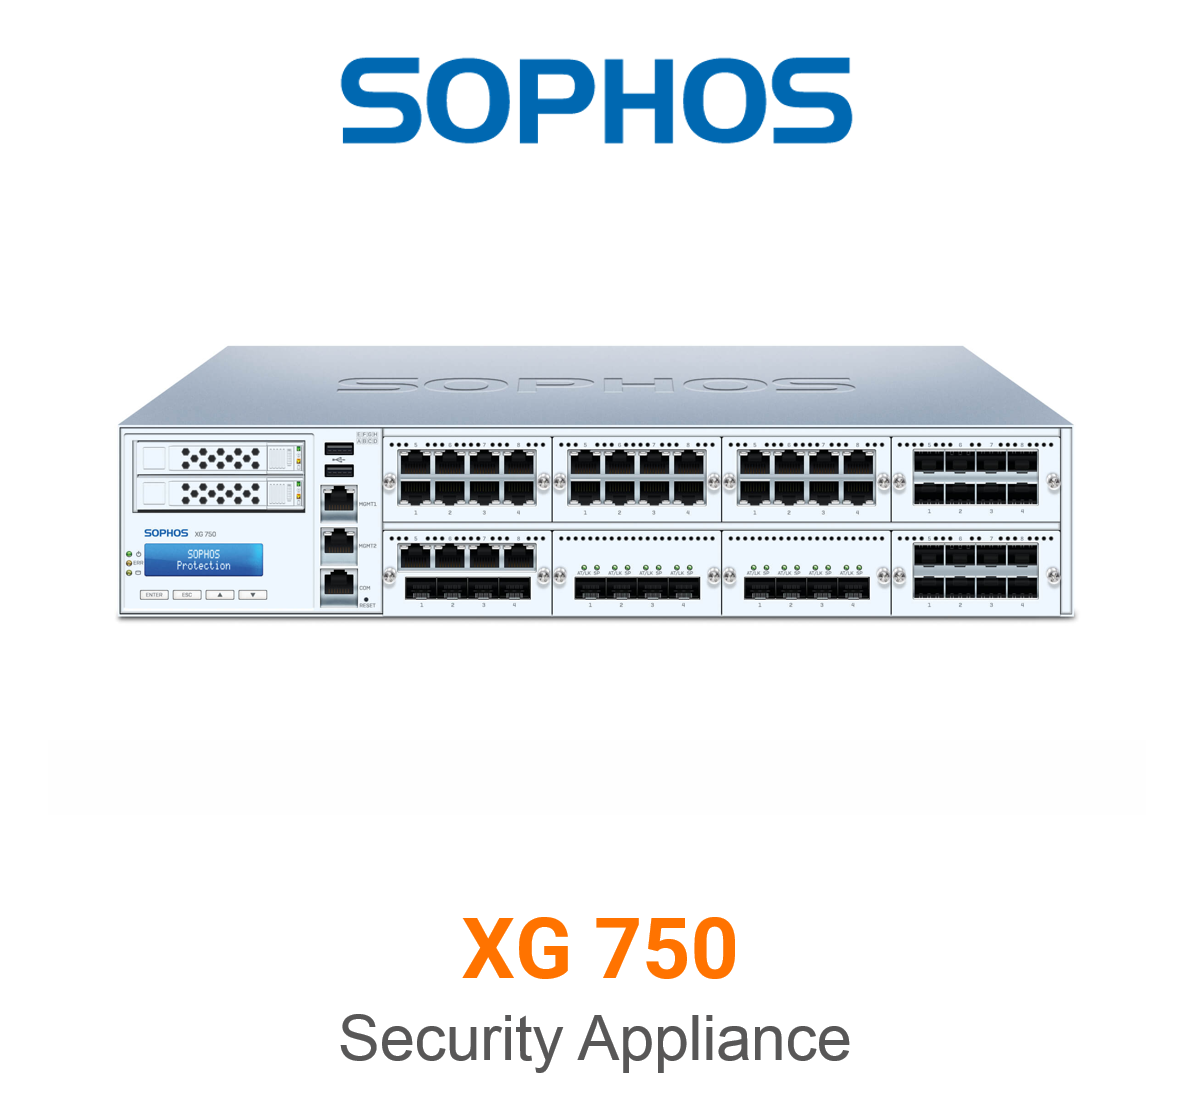 Sophos XG 750 Security Appliance